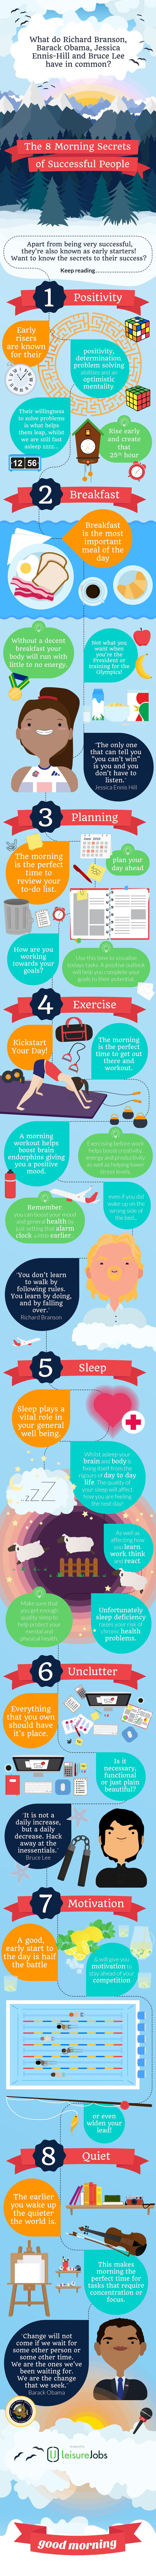 INFOGRAPHIC: Habits of Successful People